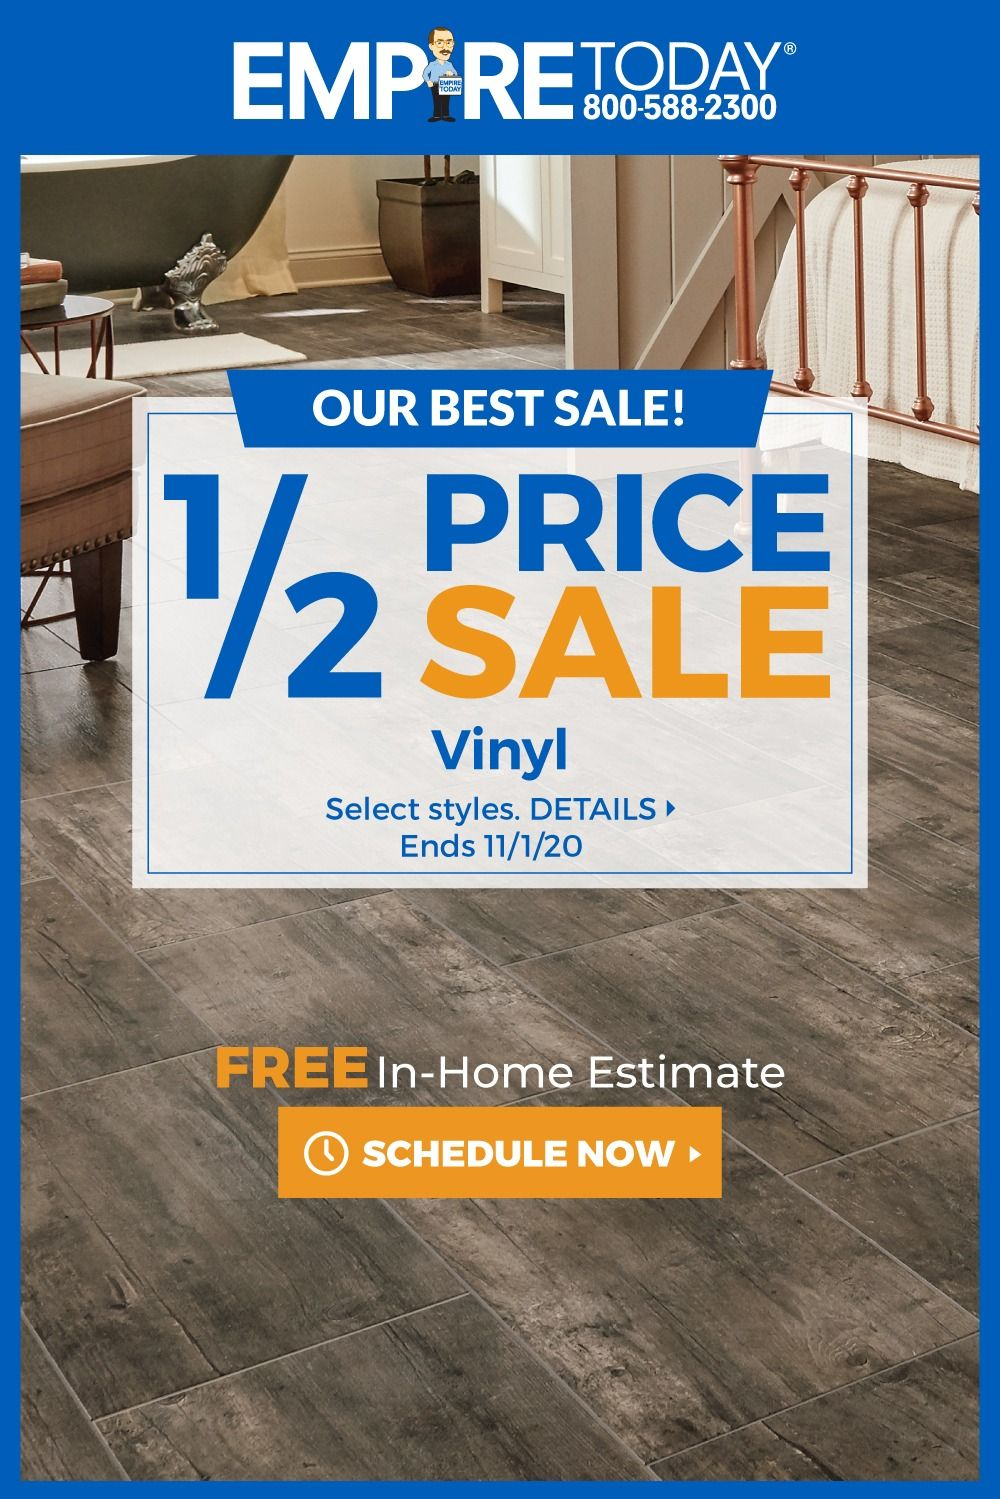 1 2 Price Sale Hardwood Vinyl Laminate Carpet Shop At Home For New Floors In 2020 Home Estimate House Flooring Today